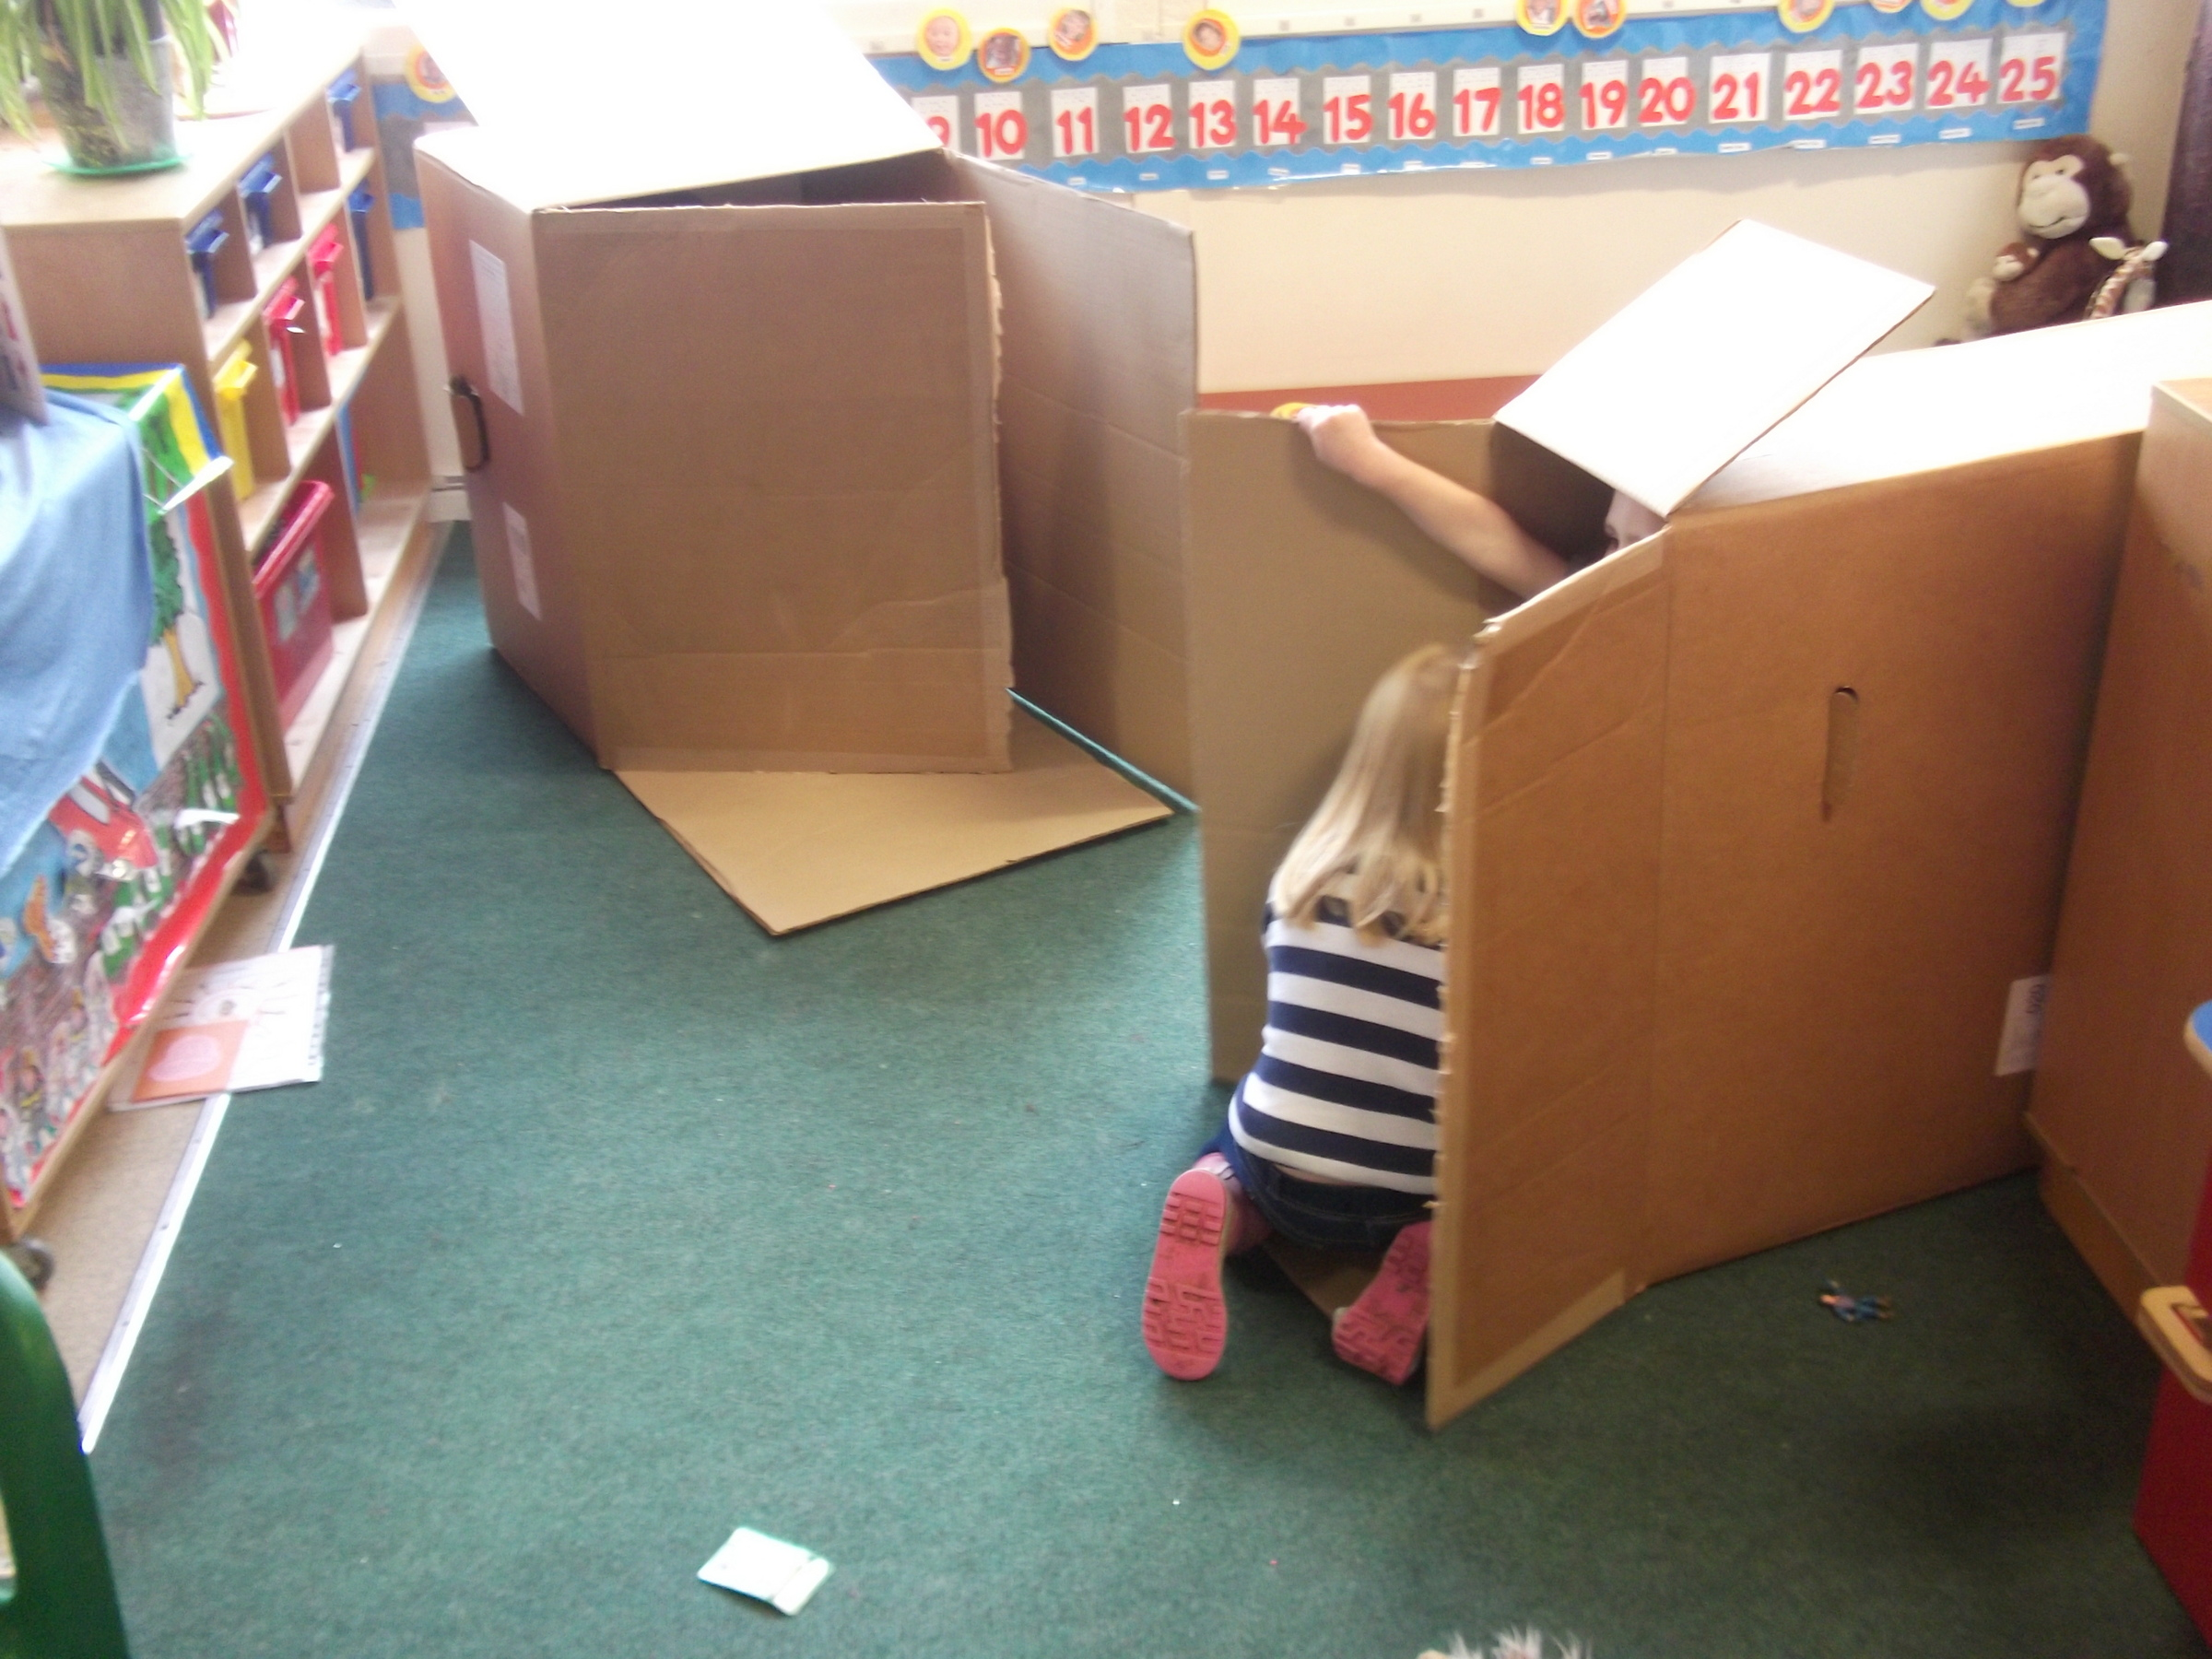 Playing in boxes!